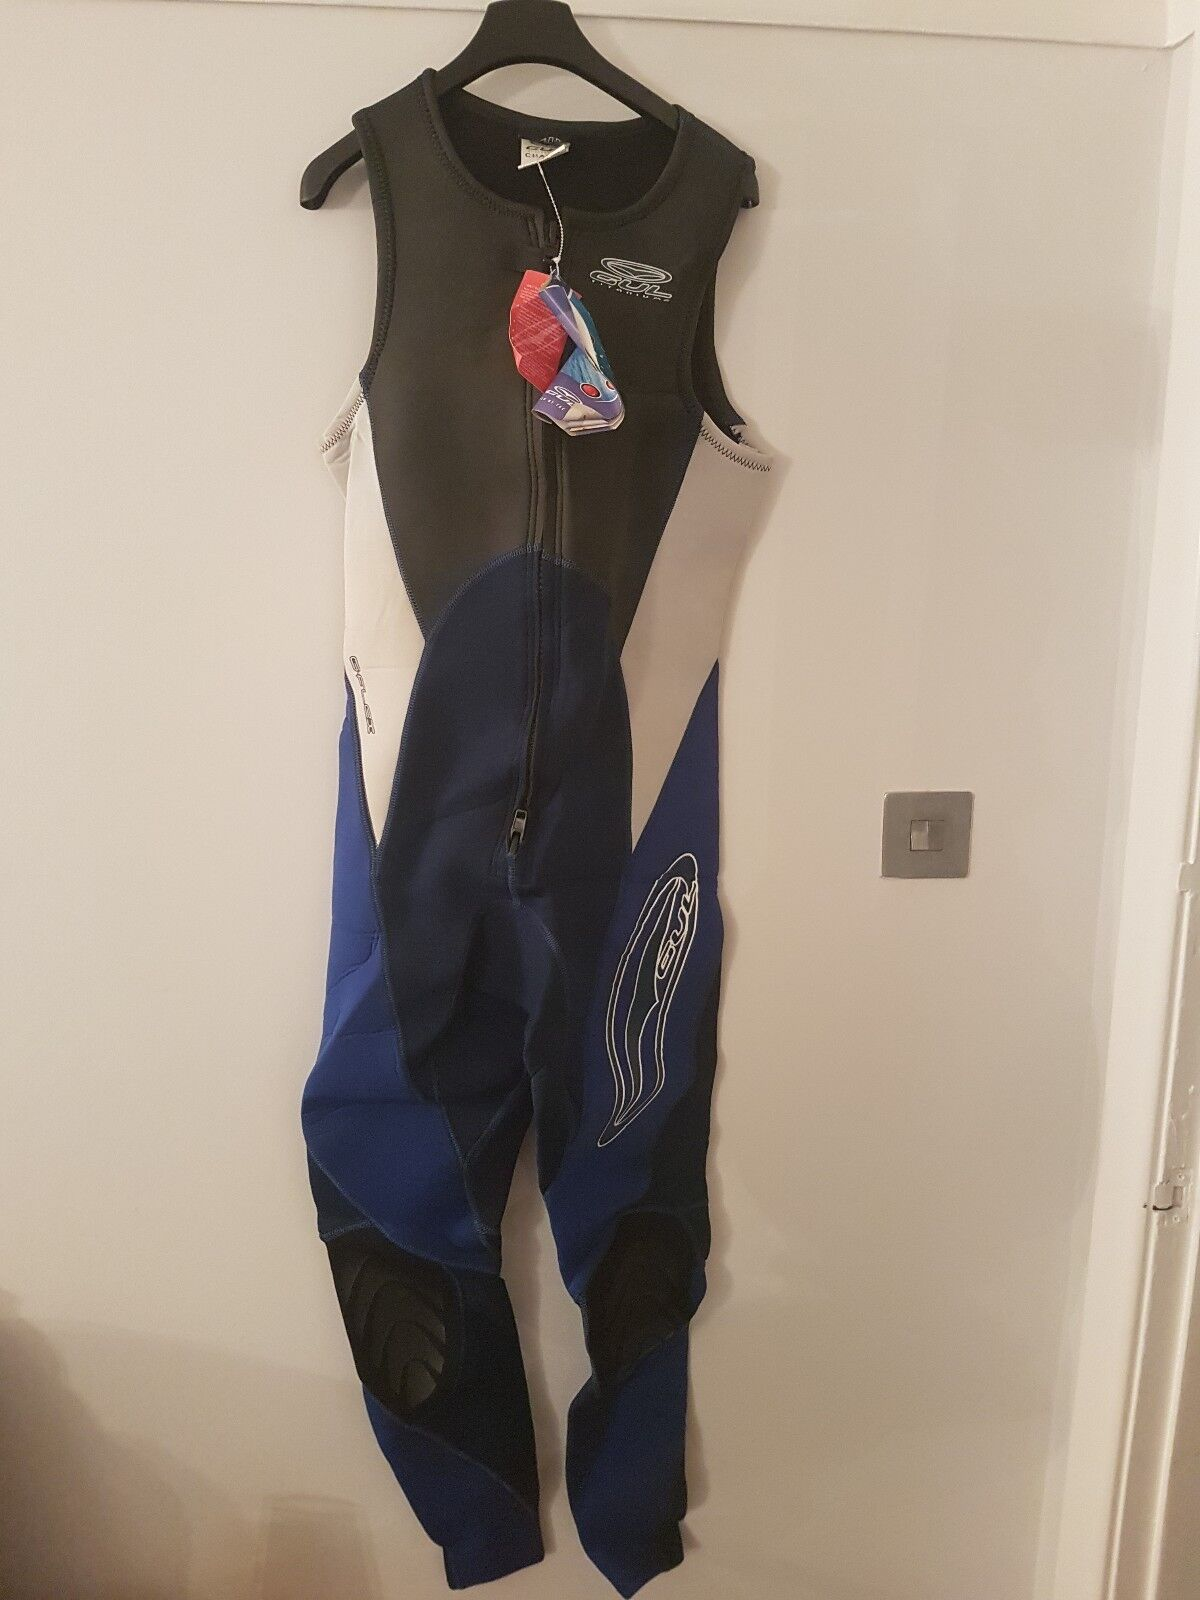 Gul Titanium Wetsuit Medium Female New With Tags bluee No Sleeves